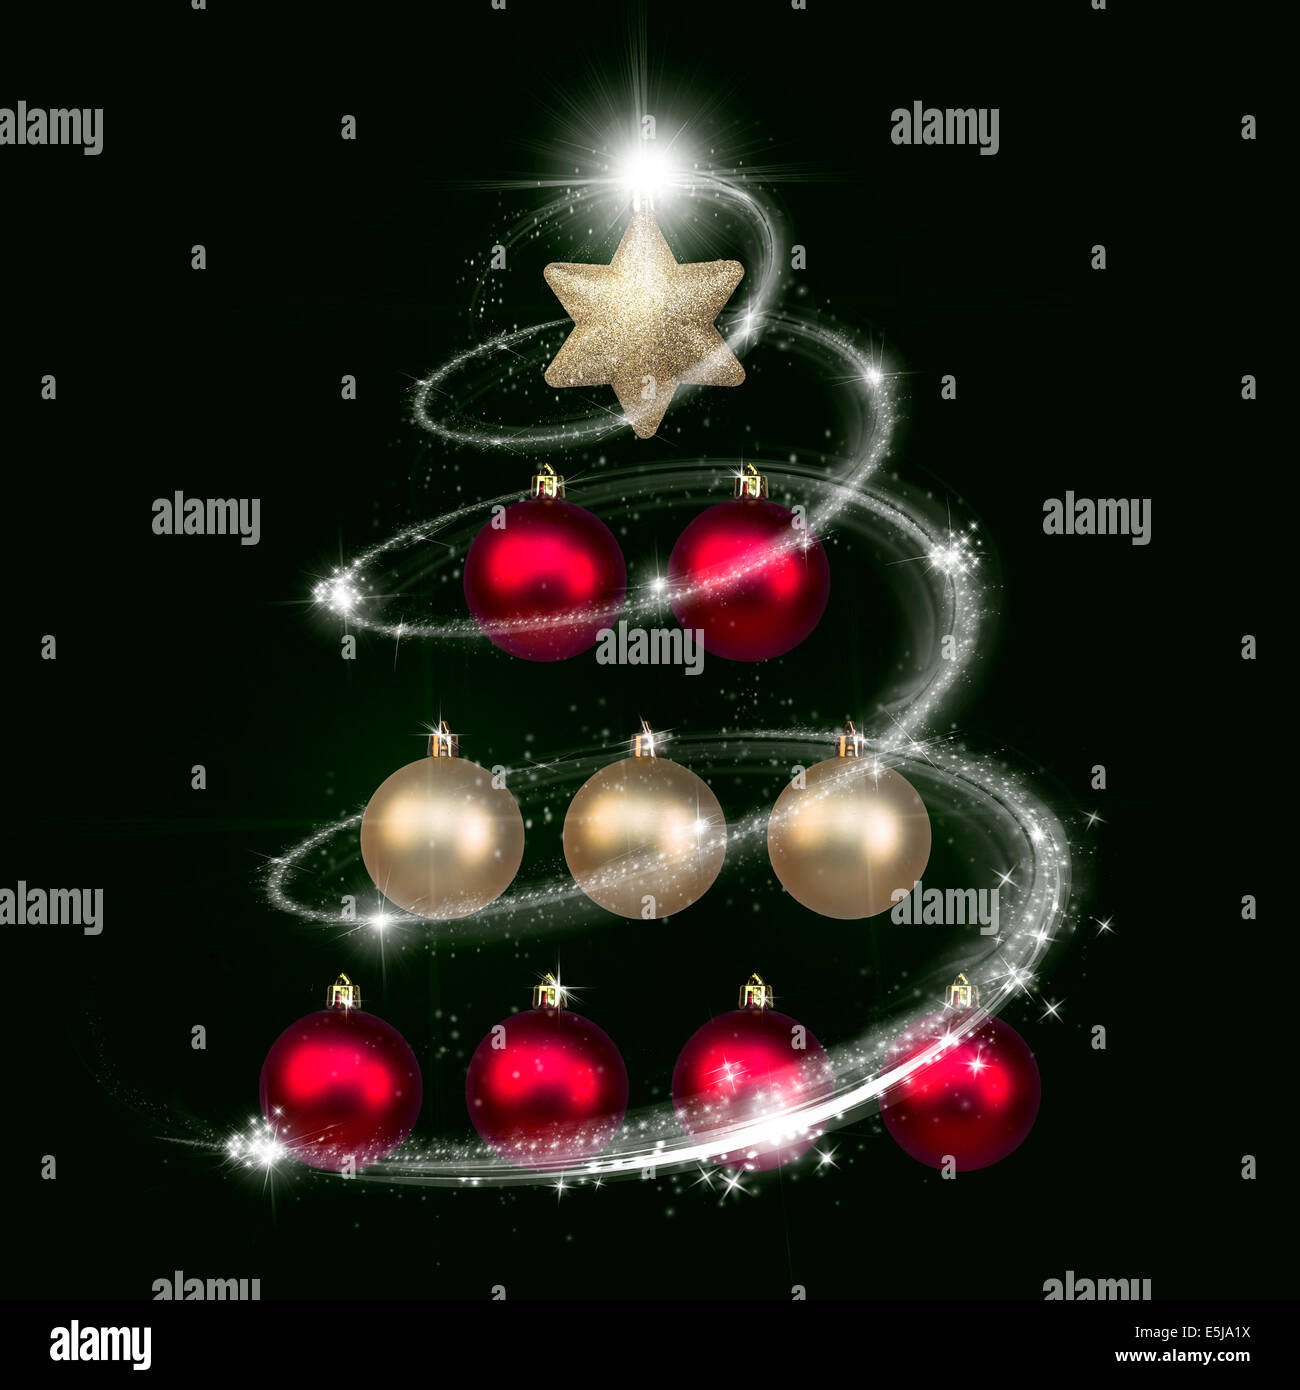 christmas tree ball black gold stock photos christmas tree ball black gold stock images alamy